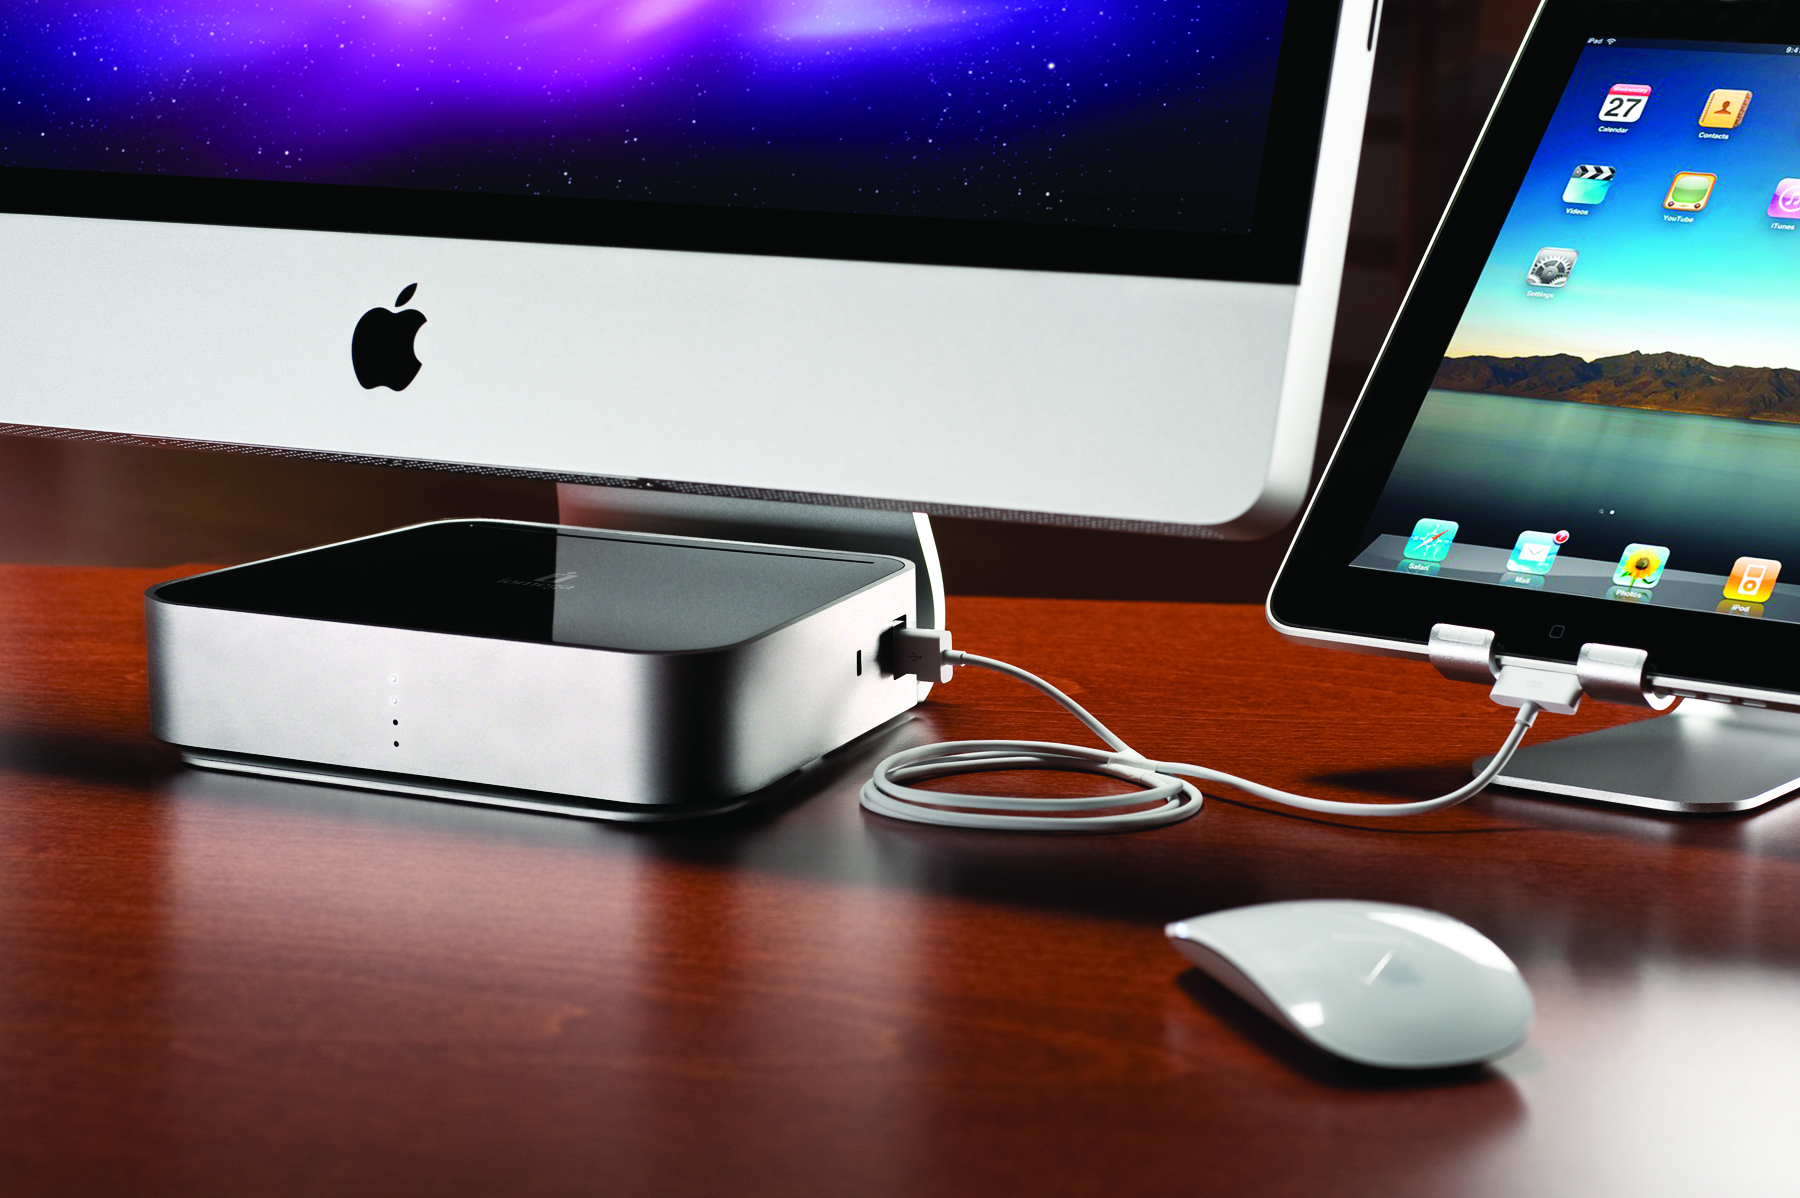 The Iomega Mac Companion Hard Drive is the first external hard drive for Macs that also offers an USB hub to help the computer host and sync with other USB devices.